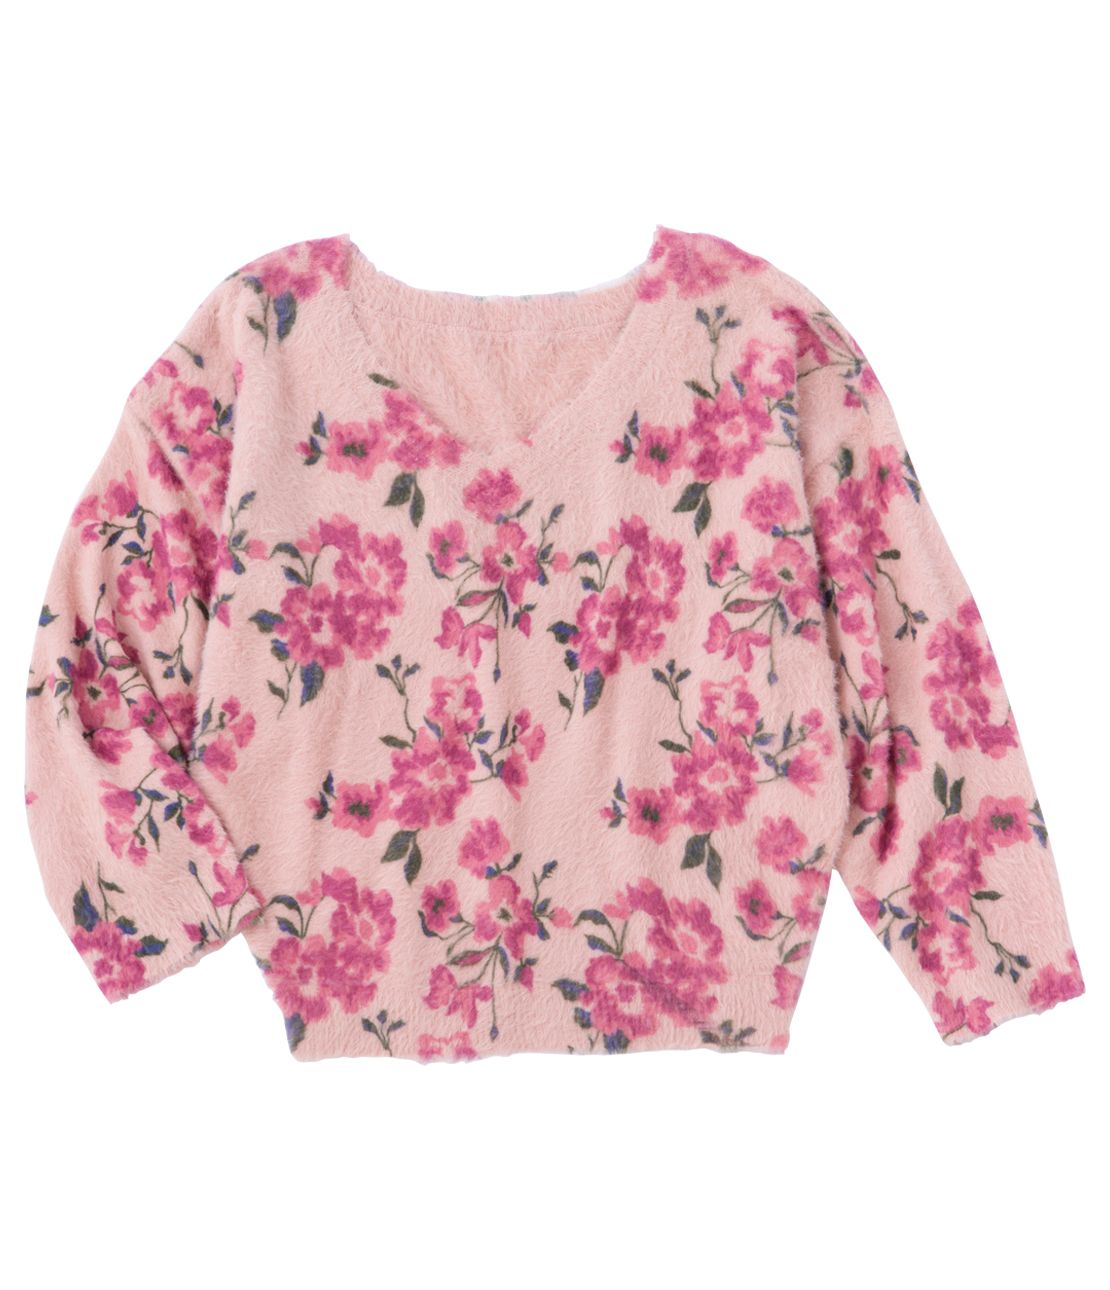 Brushed flower print knit